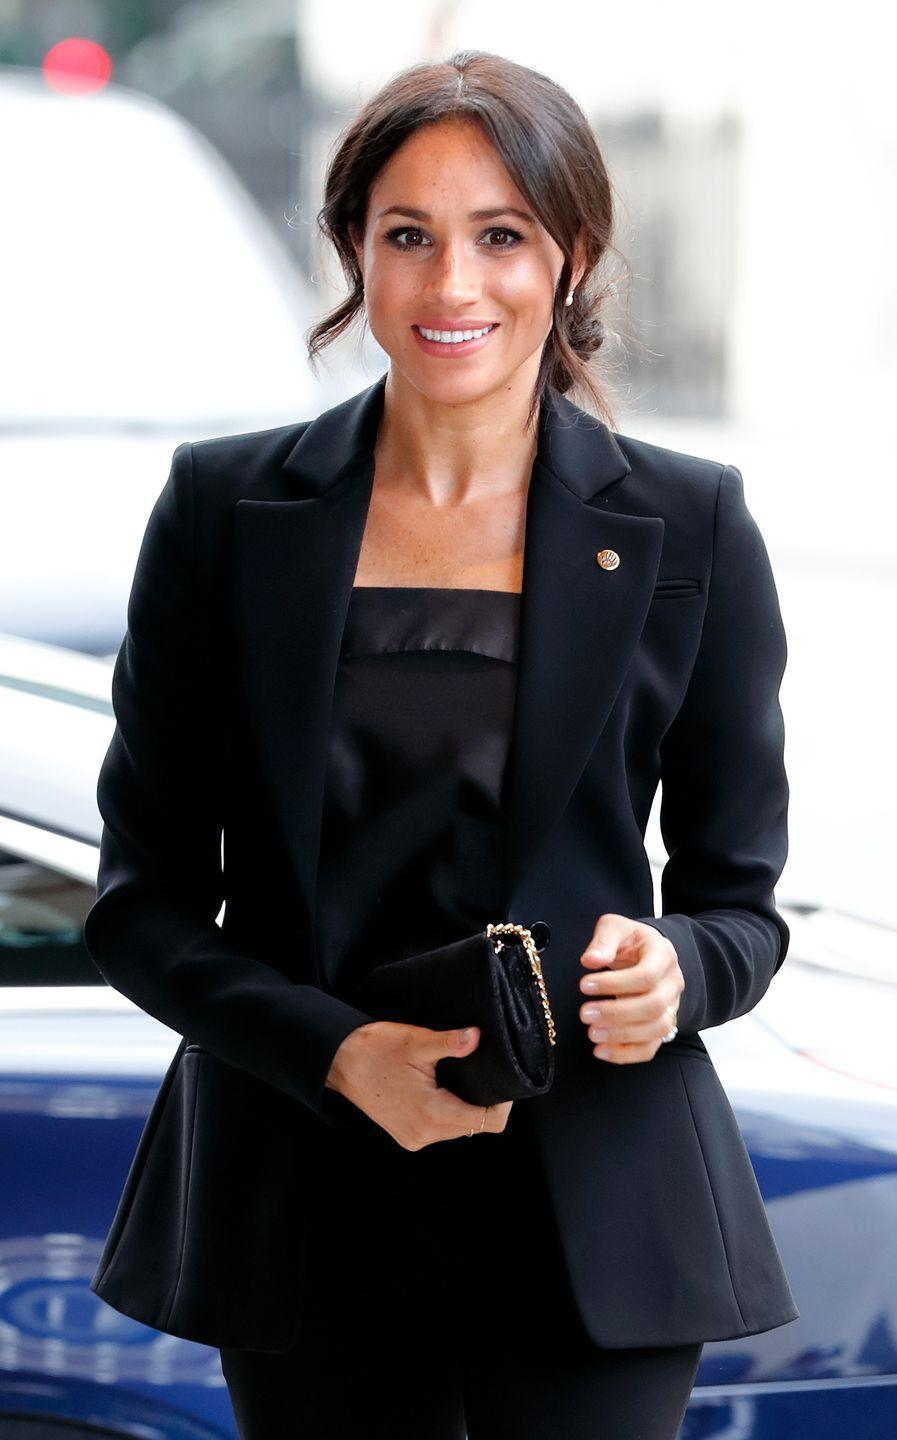 <p>In September 2018, Markle donned a black blazer over a black dress, adding structure to her outfit. </p>